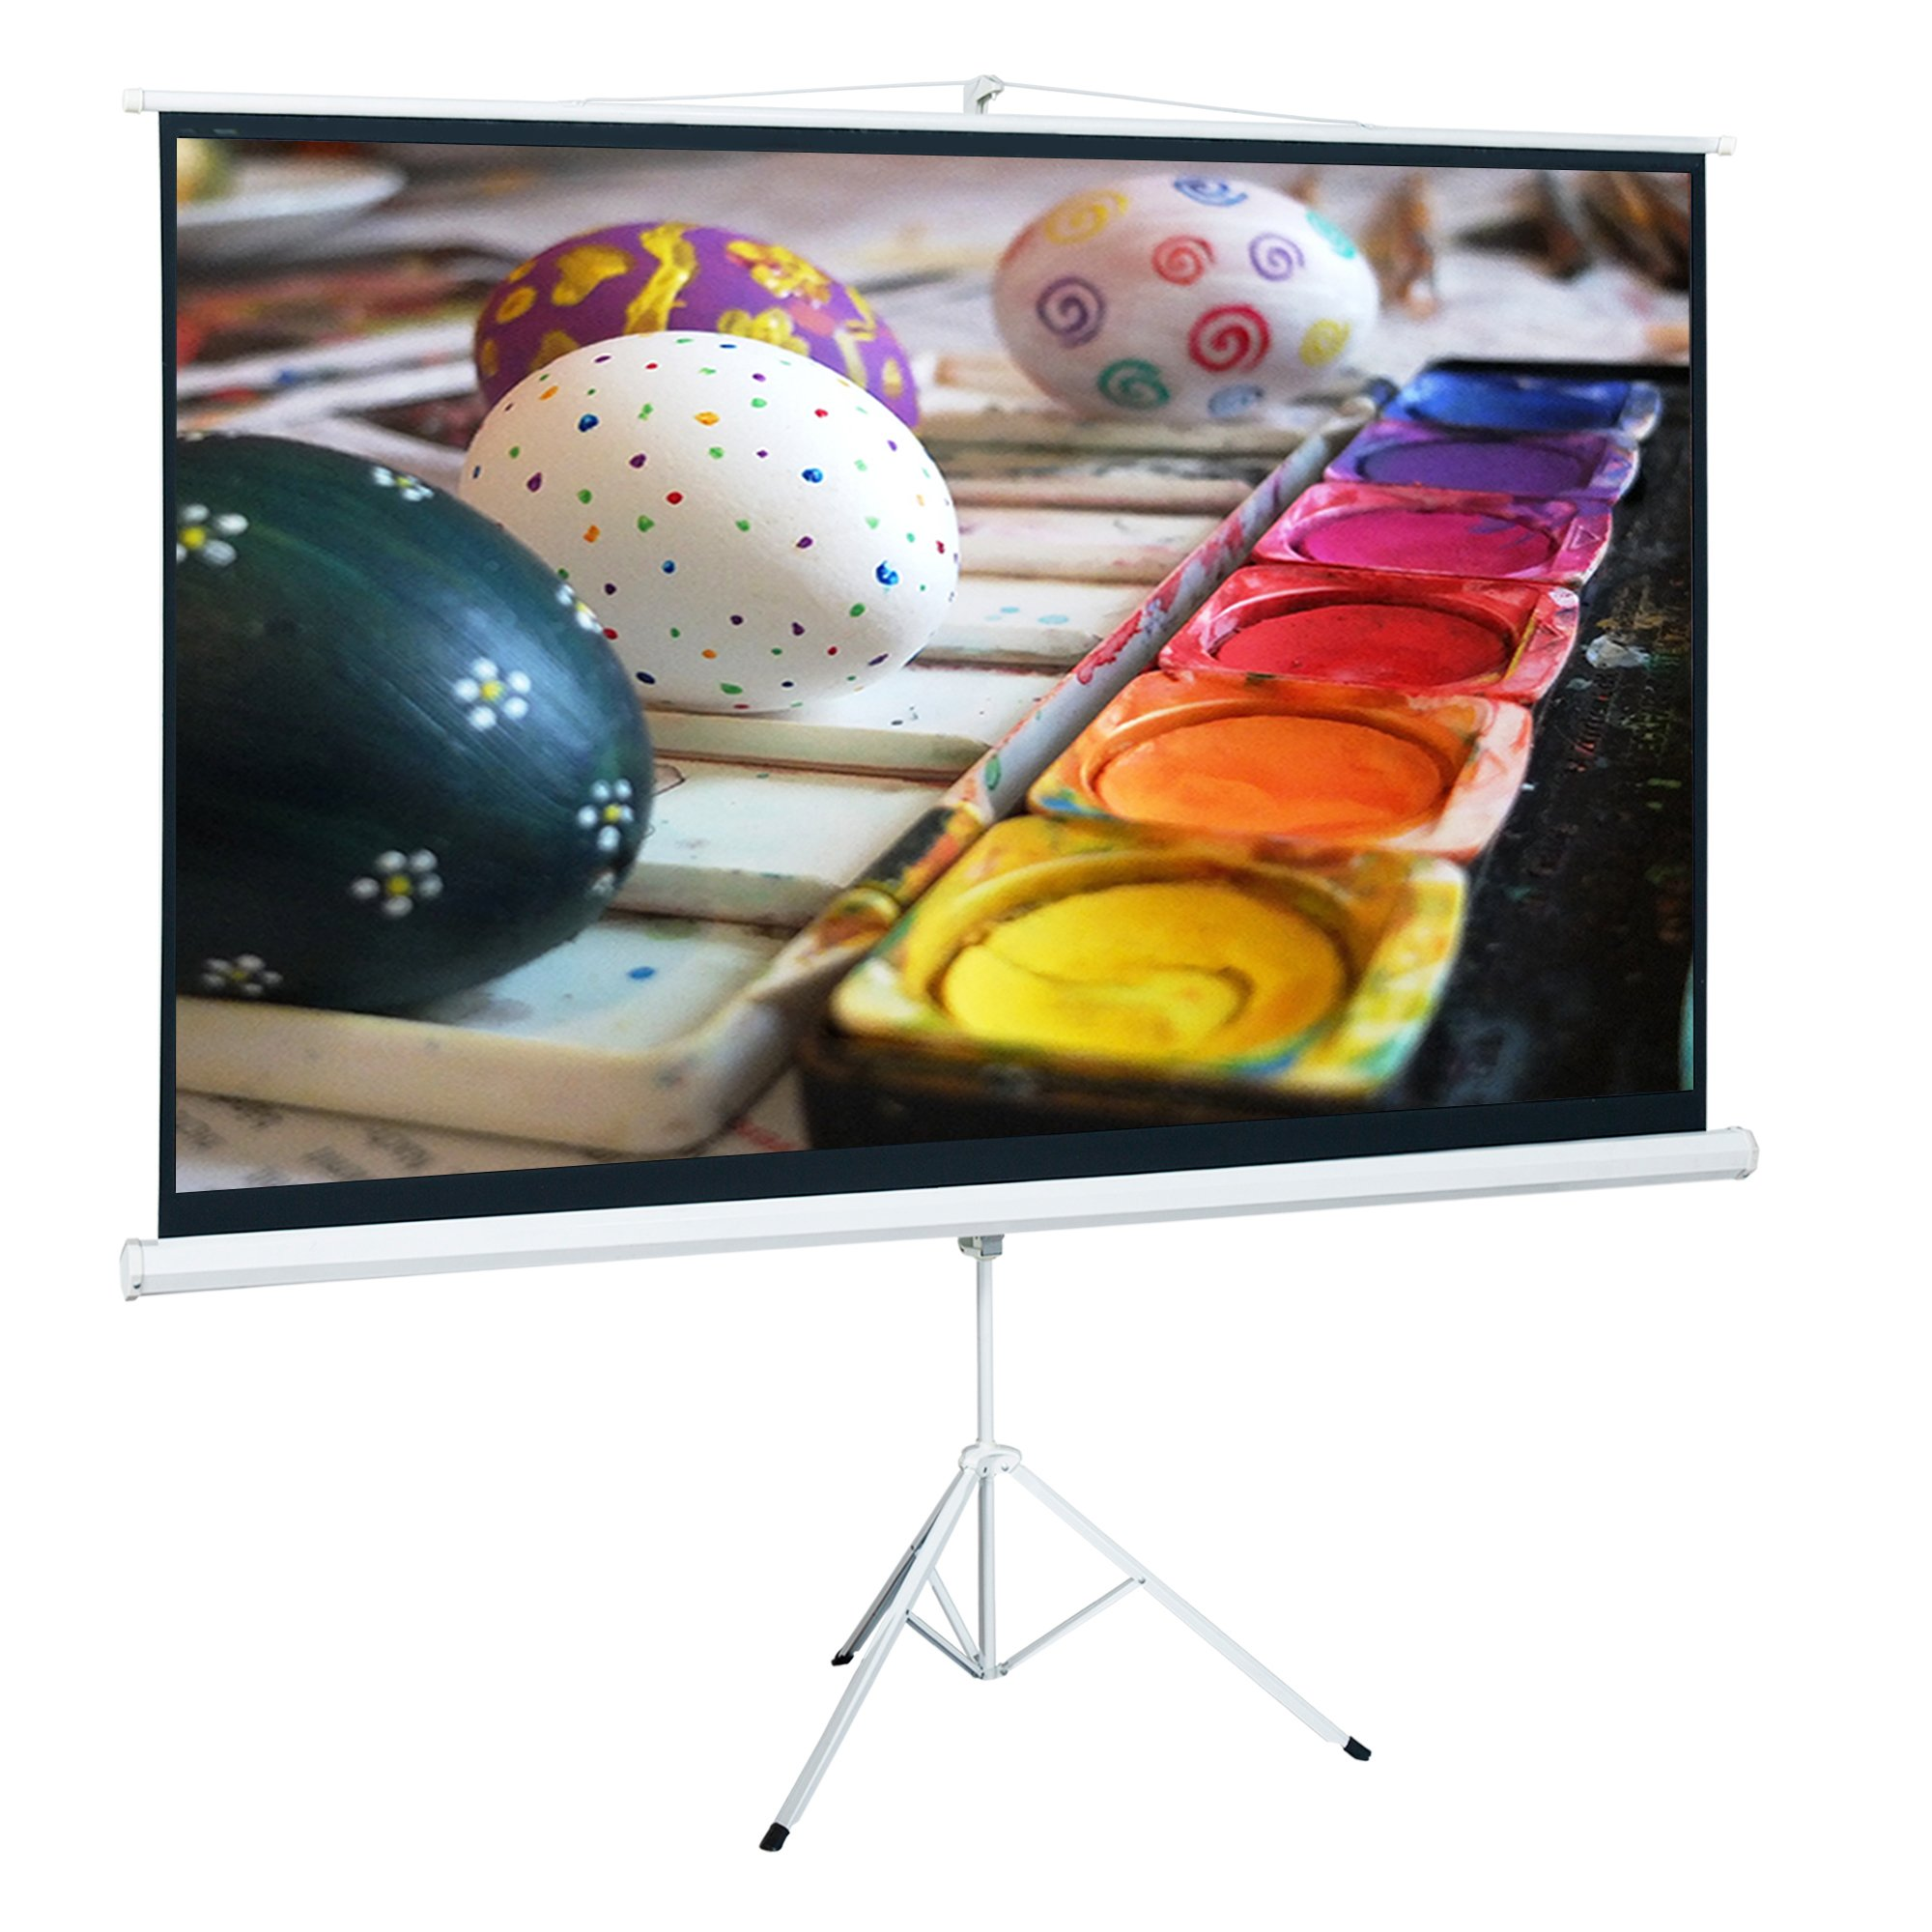 Cloud Mountain Tripod 100 Inch 16:9 HD Projector Adjustable Multi Aspect Ratio Projection Screen Portable Pull Up Stand by Cloud Mountain